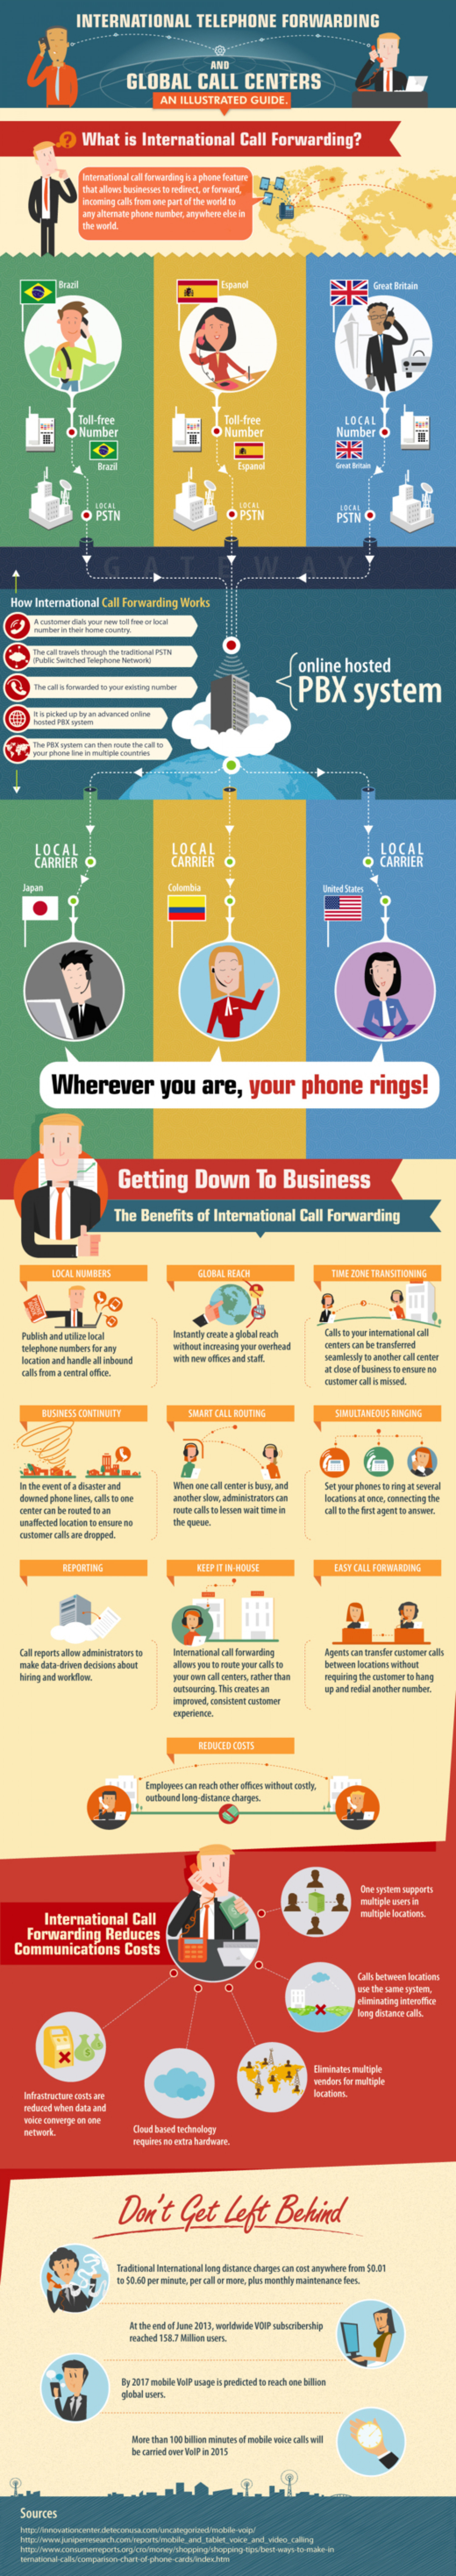 International Telephone Forwarding and Global Call Centers: An Illustrated Guide Infographic